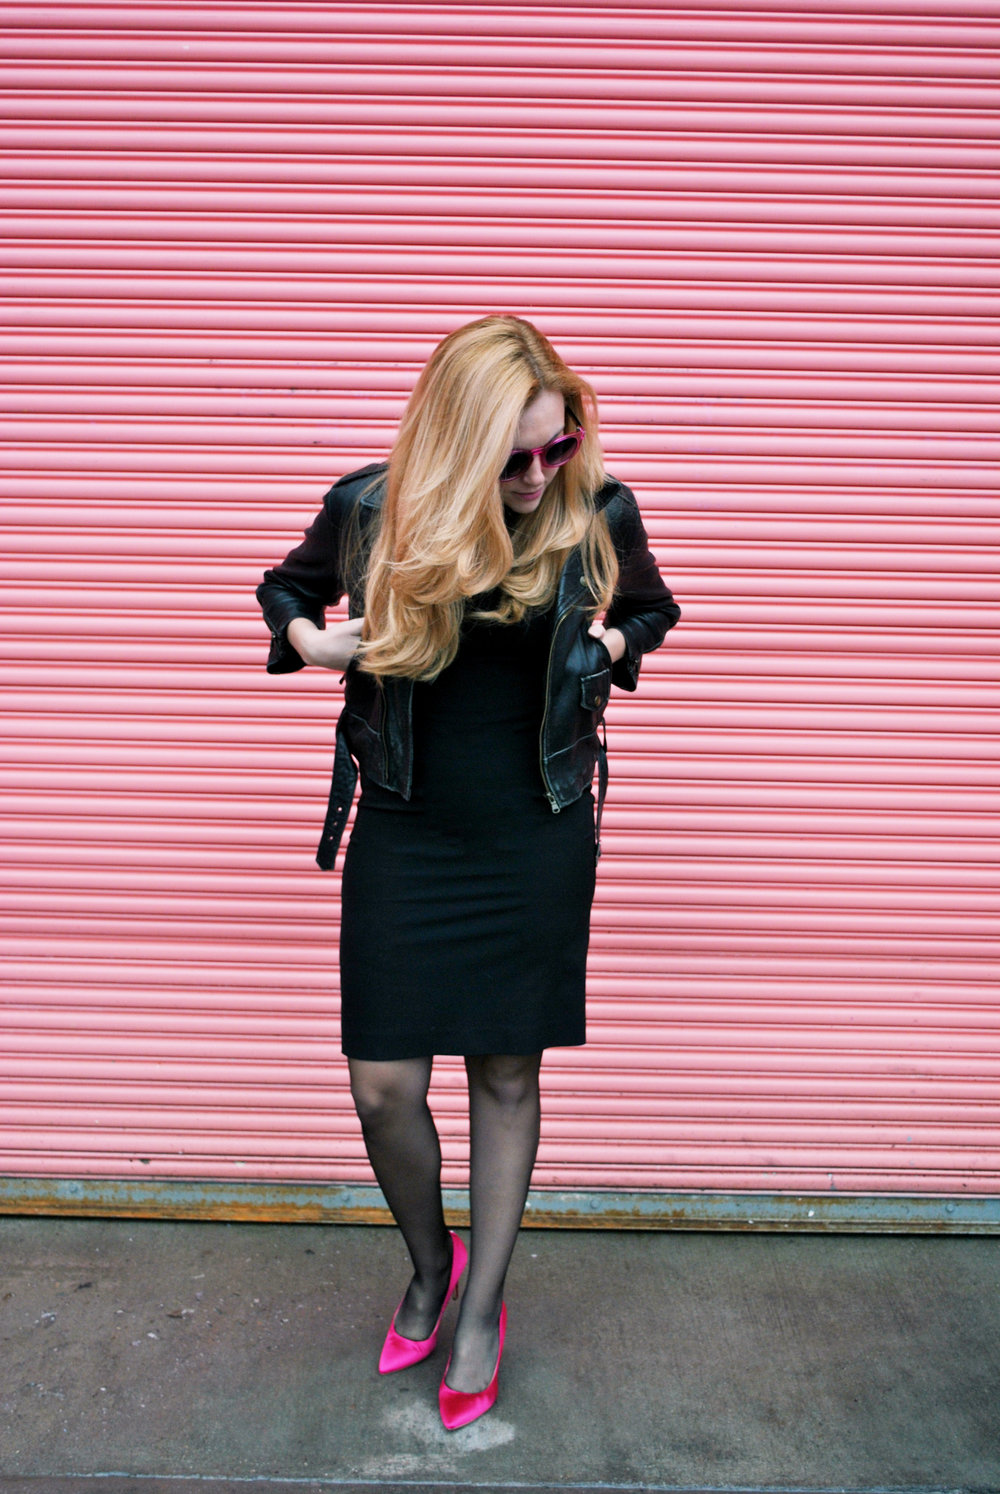 thoughtfulwish | stockings, vienne milano, rockabilly, thigh highs, valentine's day, fashion blogger, fashion, fblog, black dress, sale, hot pink, same edelman, kate spade, meredith wish